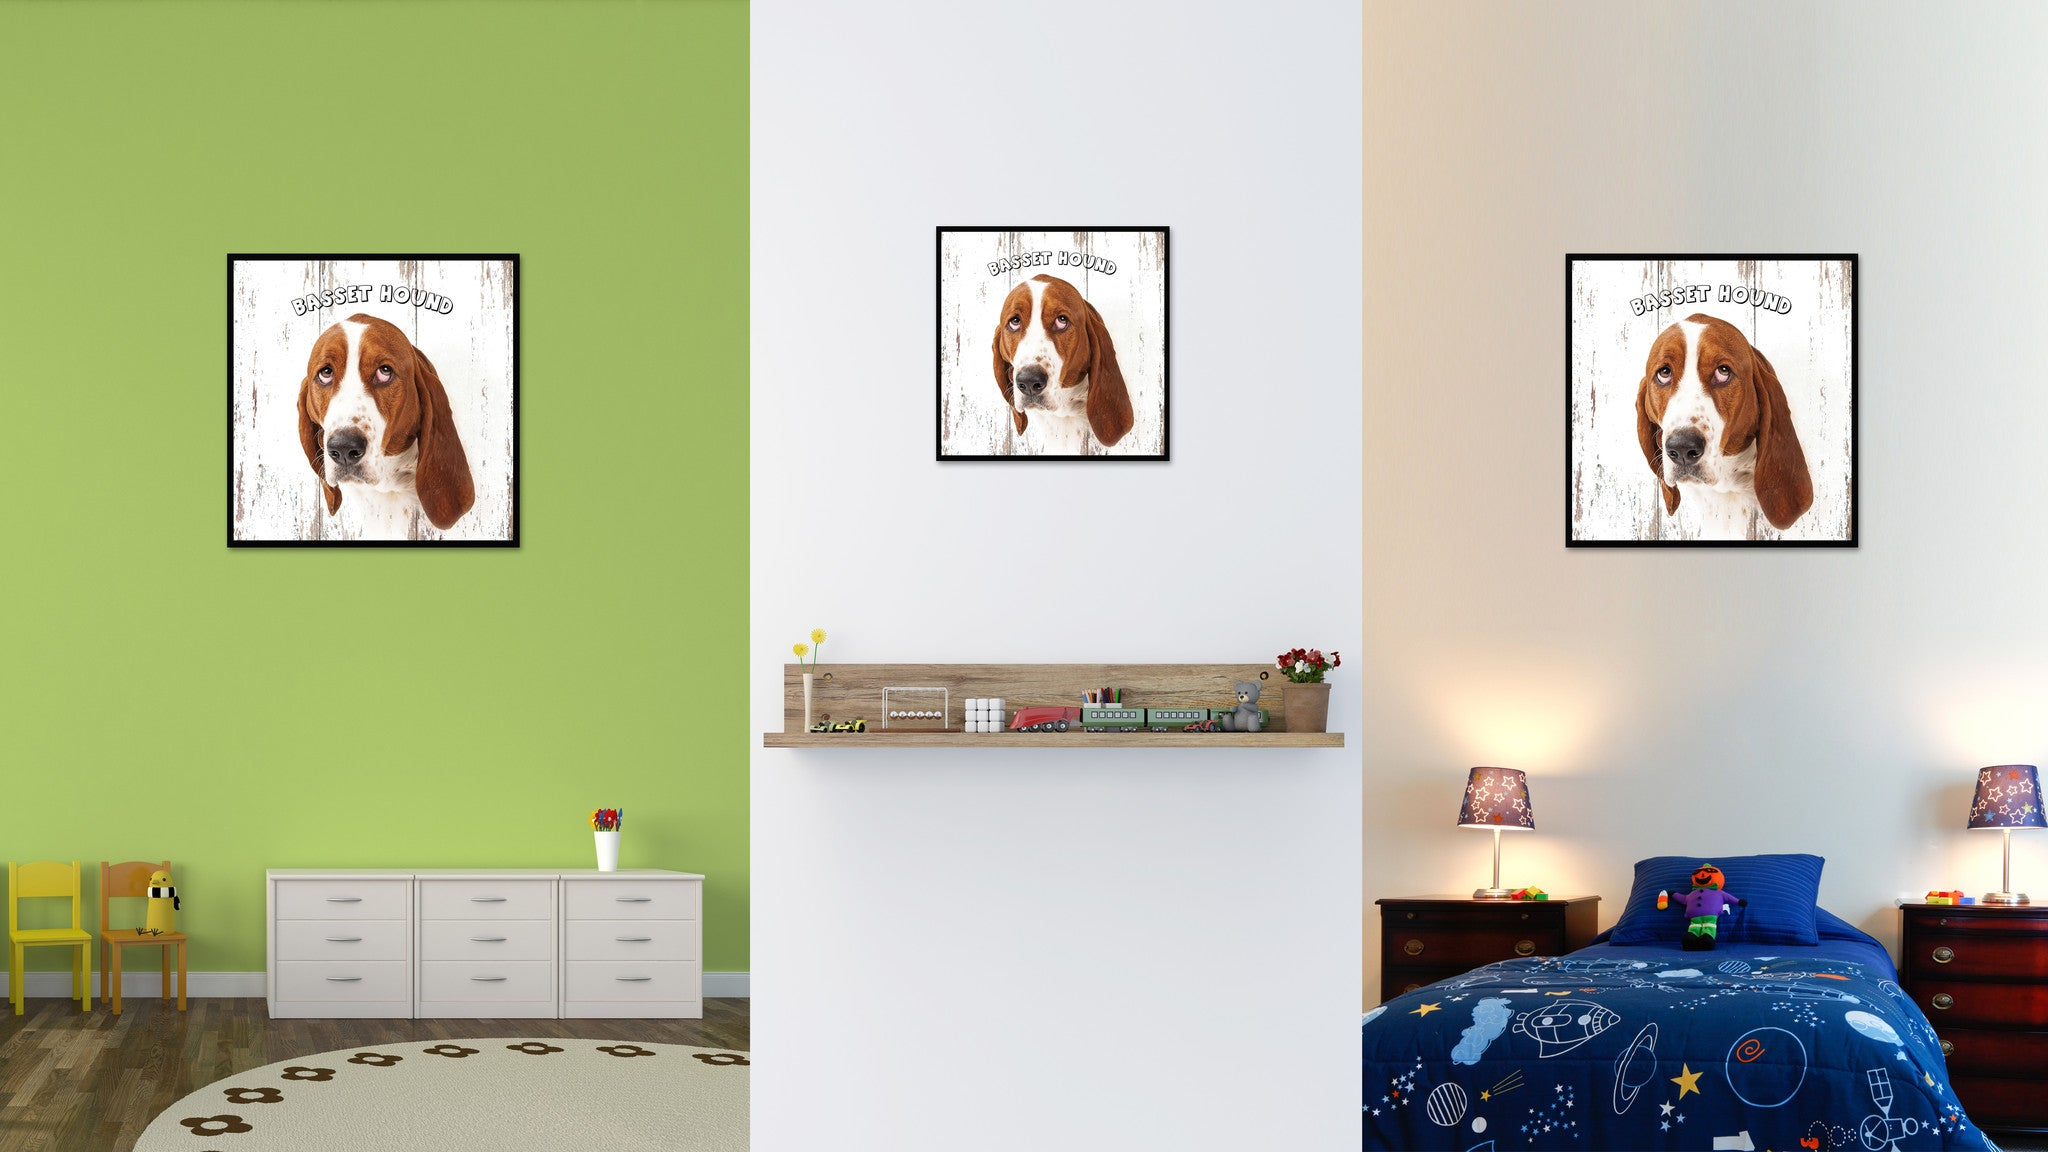 Basset Hound Dog Canvas Print Picture Frame Gift Home Decor Wall Art Decoration